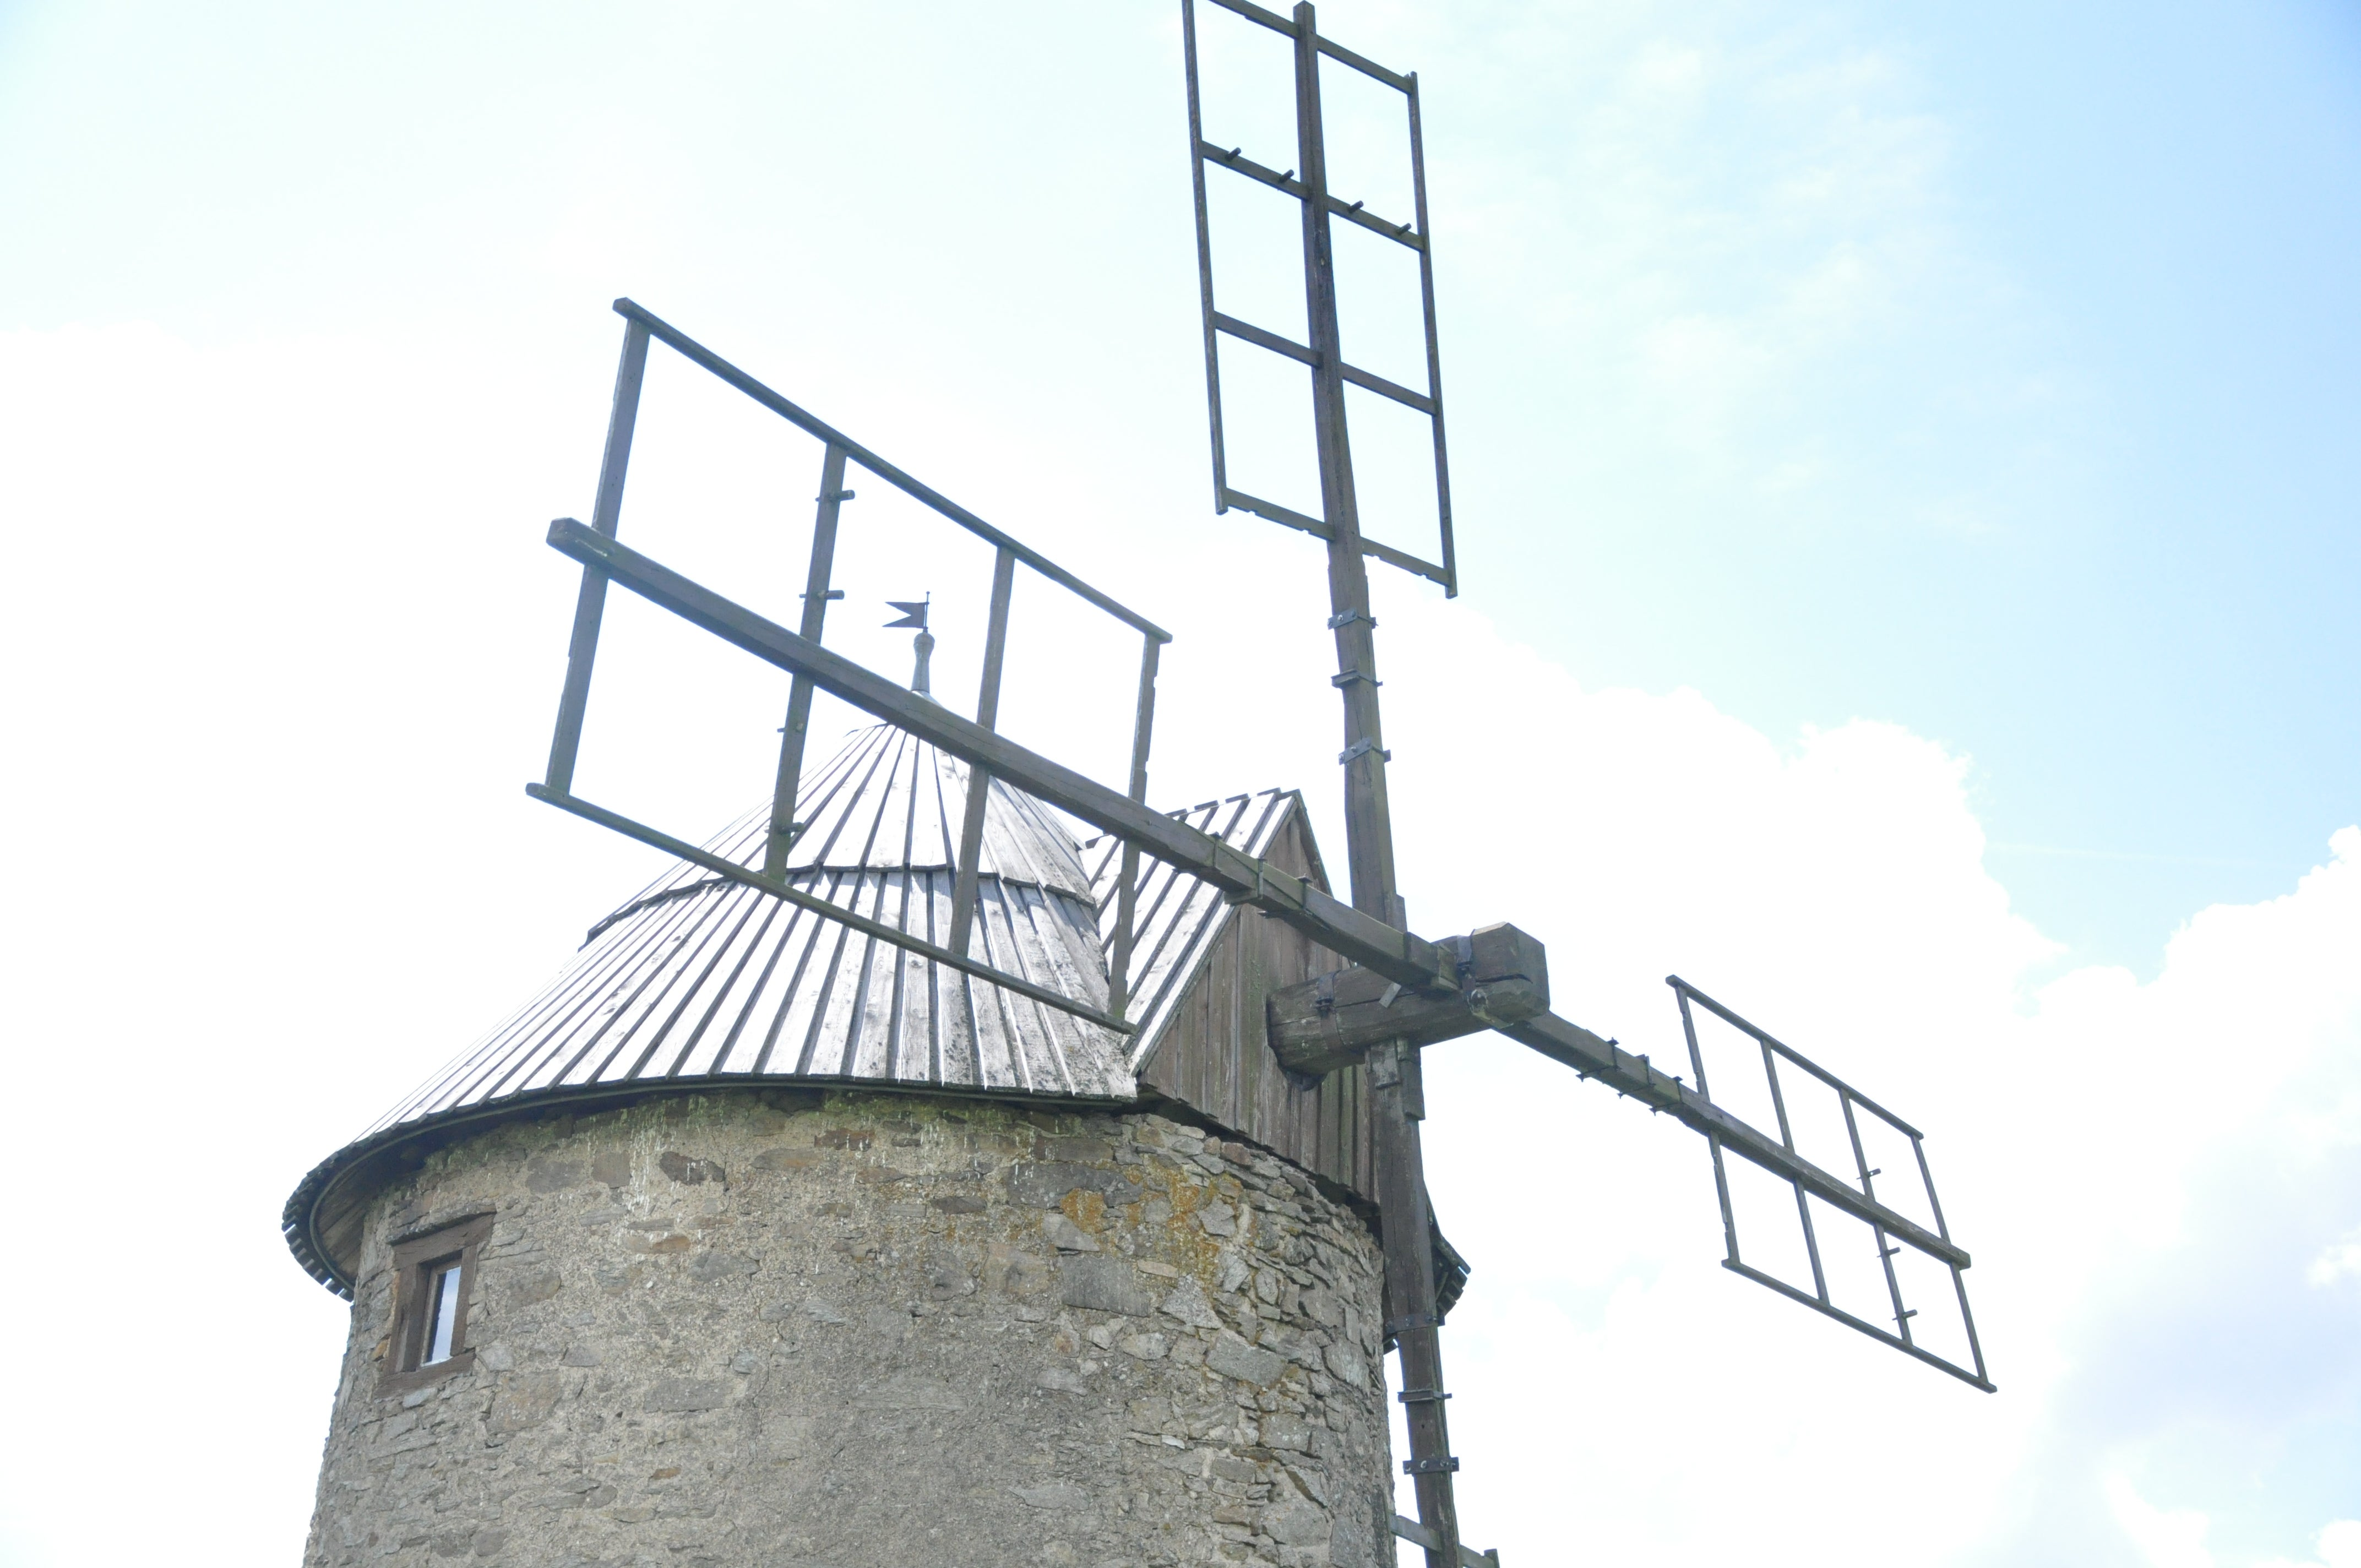 Moulin de Pargeat